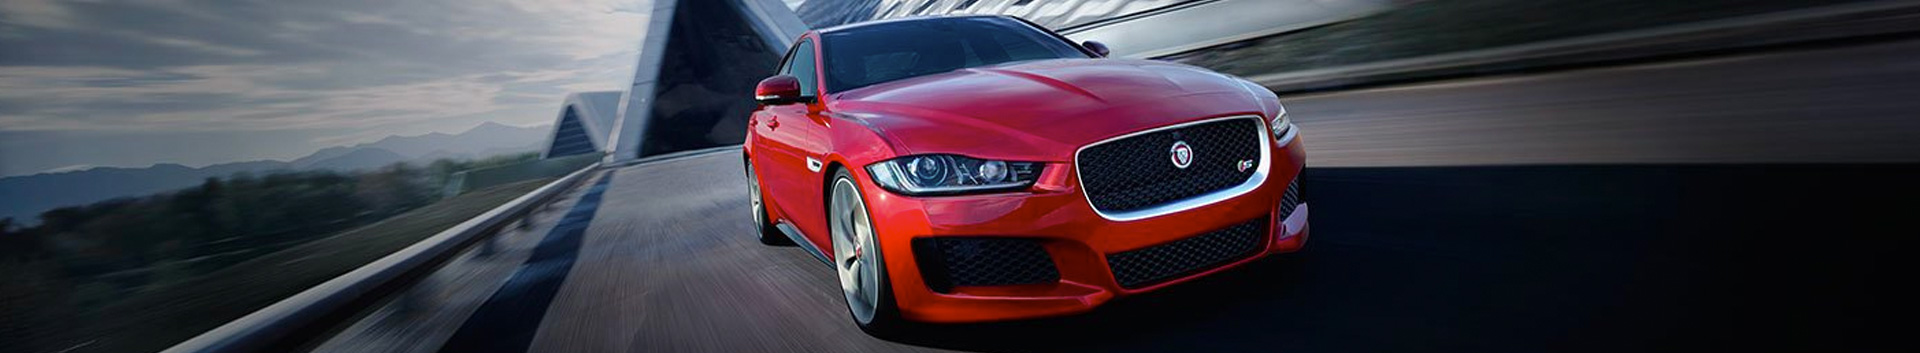 The All New 2017 Jaguar XE Banner